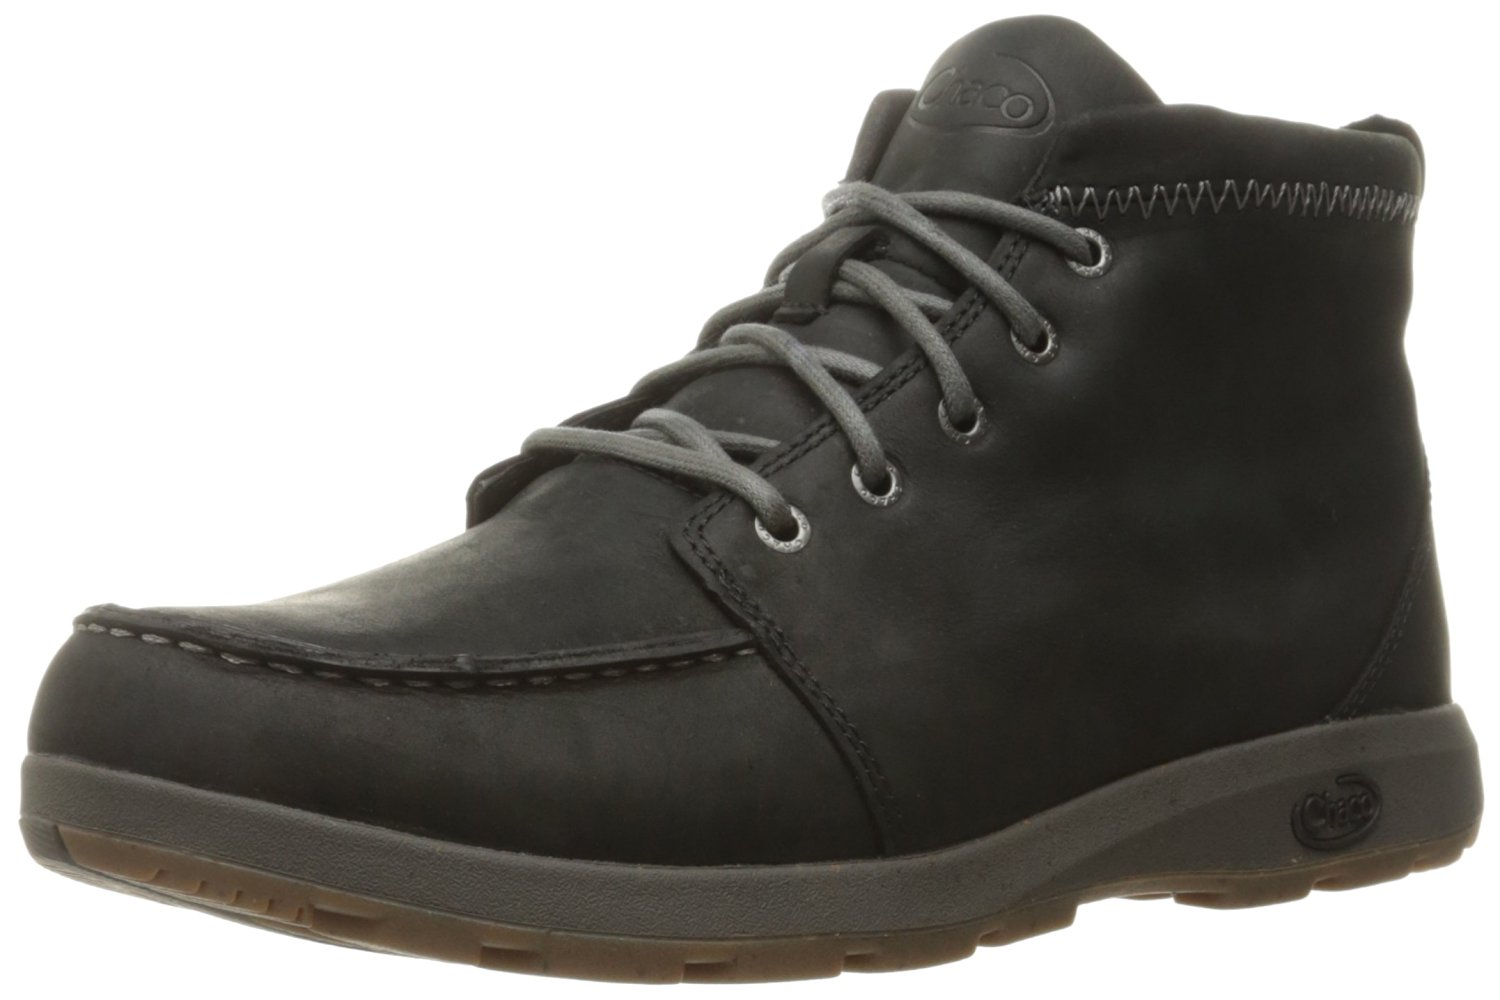 Chaco Men's Brio Mid High Boot by Chaco